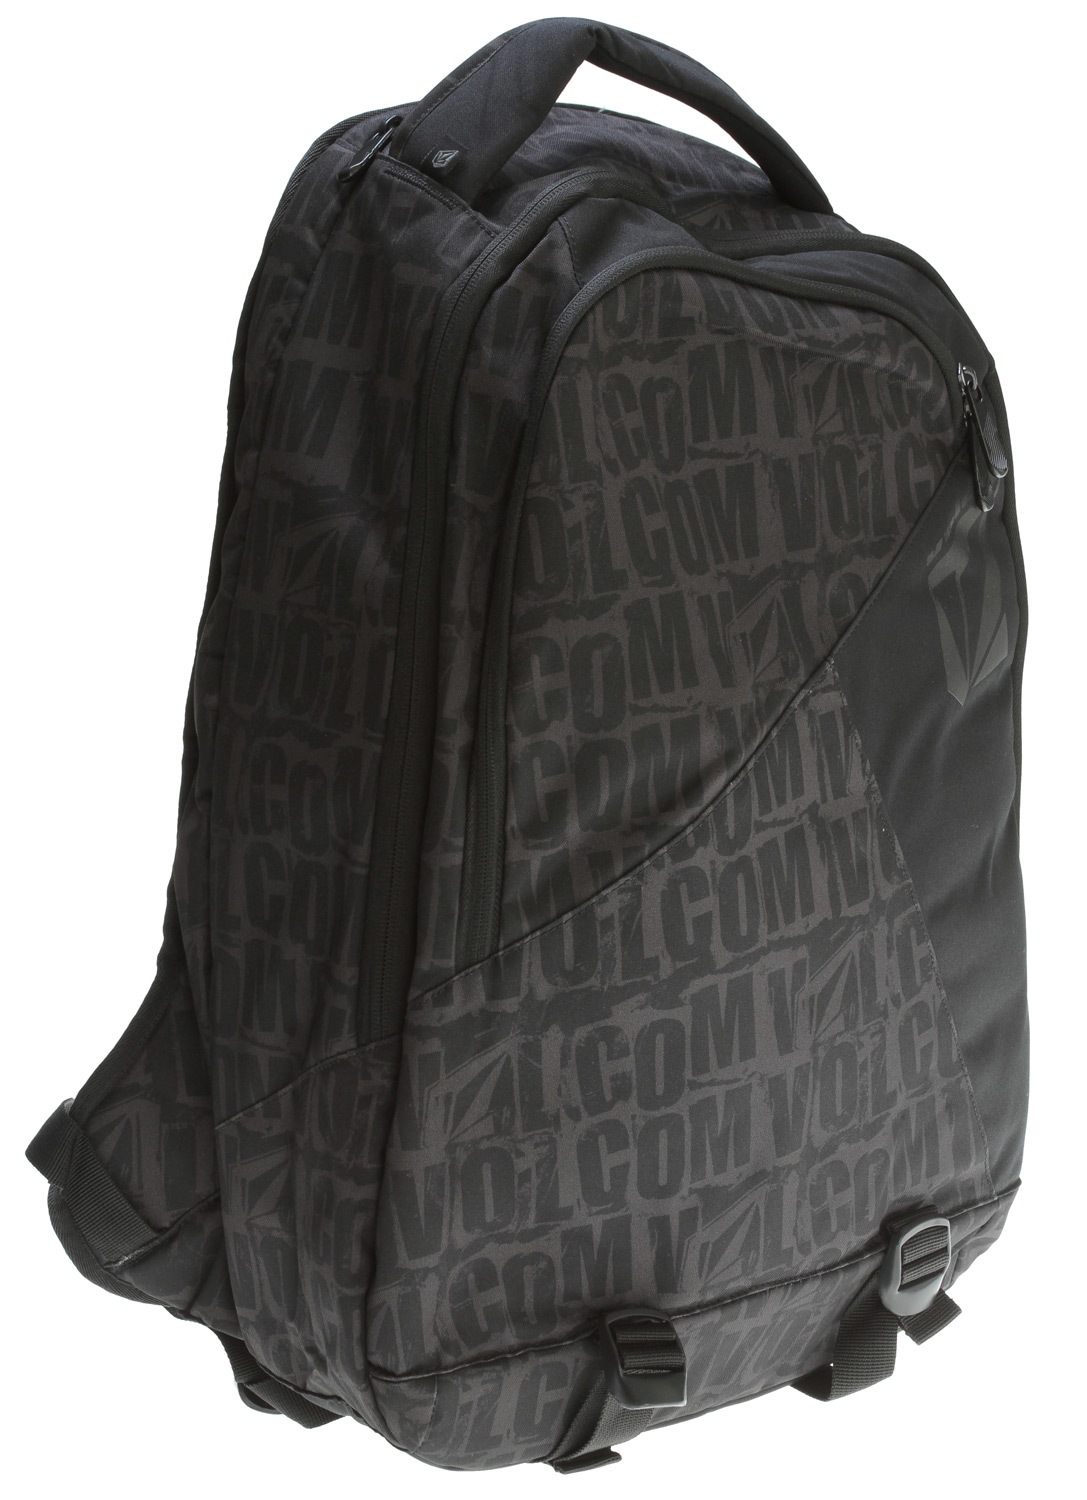 "Surf A great pack for school, the Volcom Silica Laptop Backpack has a few features that set itself apart from others in its class. Firstly, this laptop bag has a carry handle on top (like a regular school bag , unlike others who use the popular adjustable shoulder strap. Made from 300D Polyester, the bag is durable as well and with a volume of 27L, there is enough space to fit laptops of various sizes with ease. The Volcom Silica Backpack is a nice pick for those looking for a basic, reliable laptop bag that can withstand wear and tear.Key Features of the Volcom Purma Backpack:  Laptop Compartment Dimensions: 18"" x 12"" x 3""   Bag Dimensions 19.75"" x 13"" x 6.25""  Material:300D Polyester  Weight:1 lb 12 oz - $42.95"